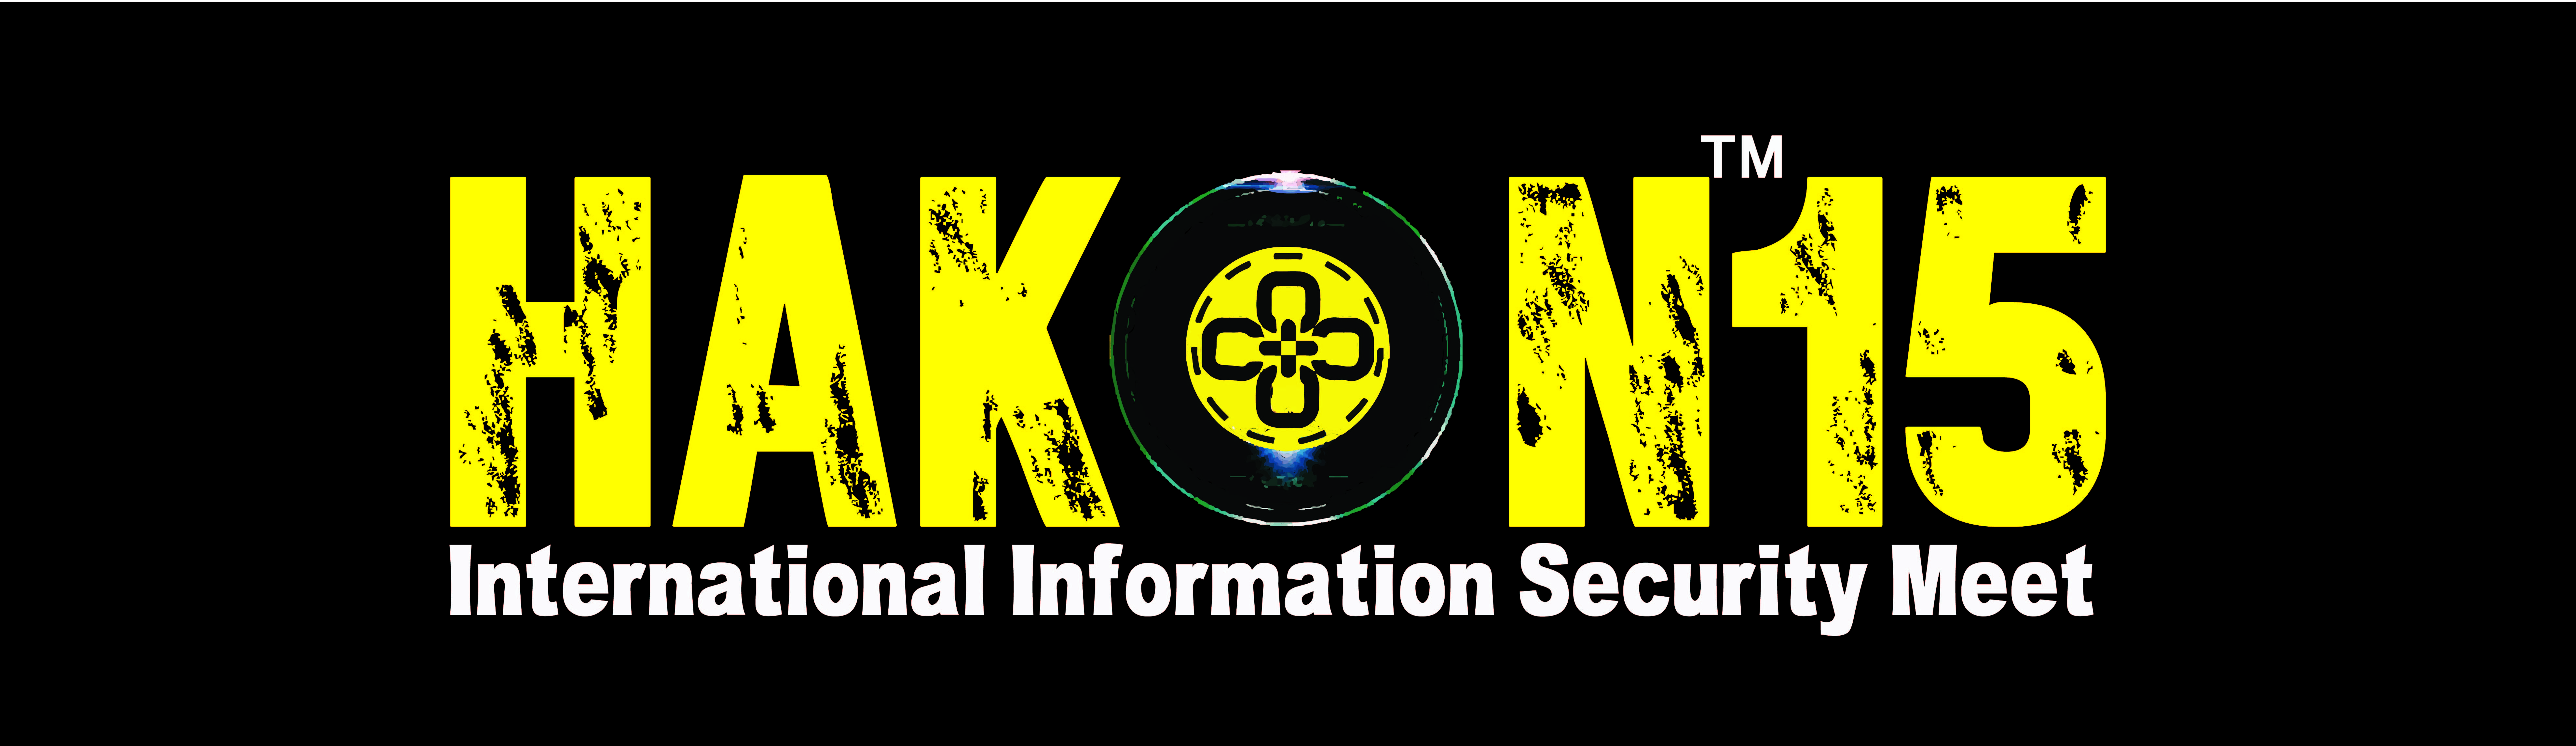 """Book Online Tickets for HAKON15 - THE HACKERS MEET -   TERRORSTR, Indore. HAKON'15 – TERRORSTROM - THE RISE OF DIGITAL TERRORISM """" & WOMEN\\\'S INSECURITY is an INTERNATIONAL INFORMATION SECURITY CONVENTION on October 4th 2015.The Information Security Convention """" Hakon'15, Ind"""